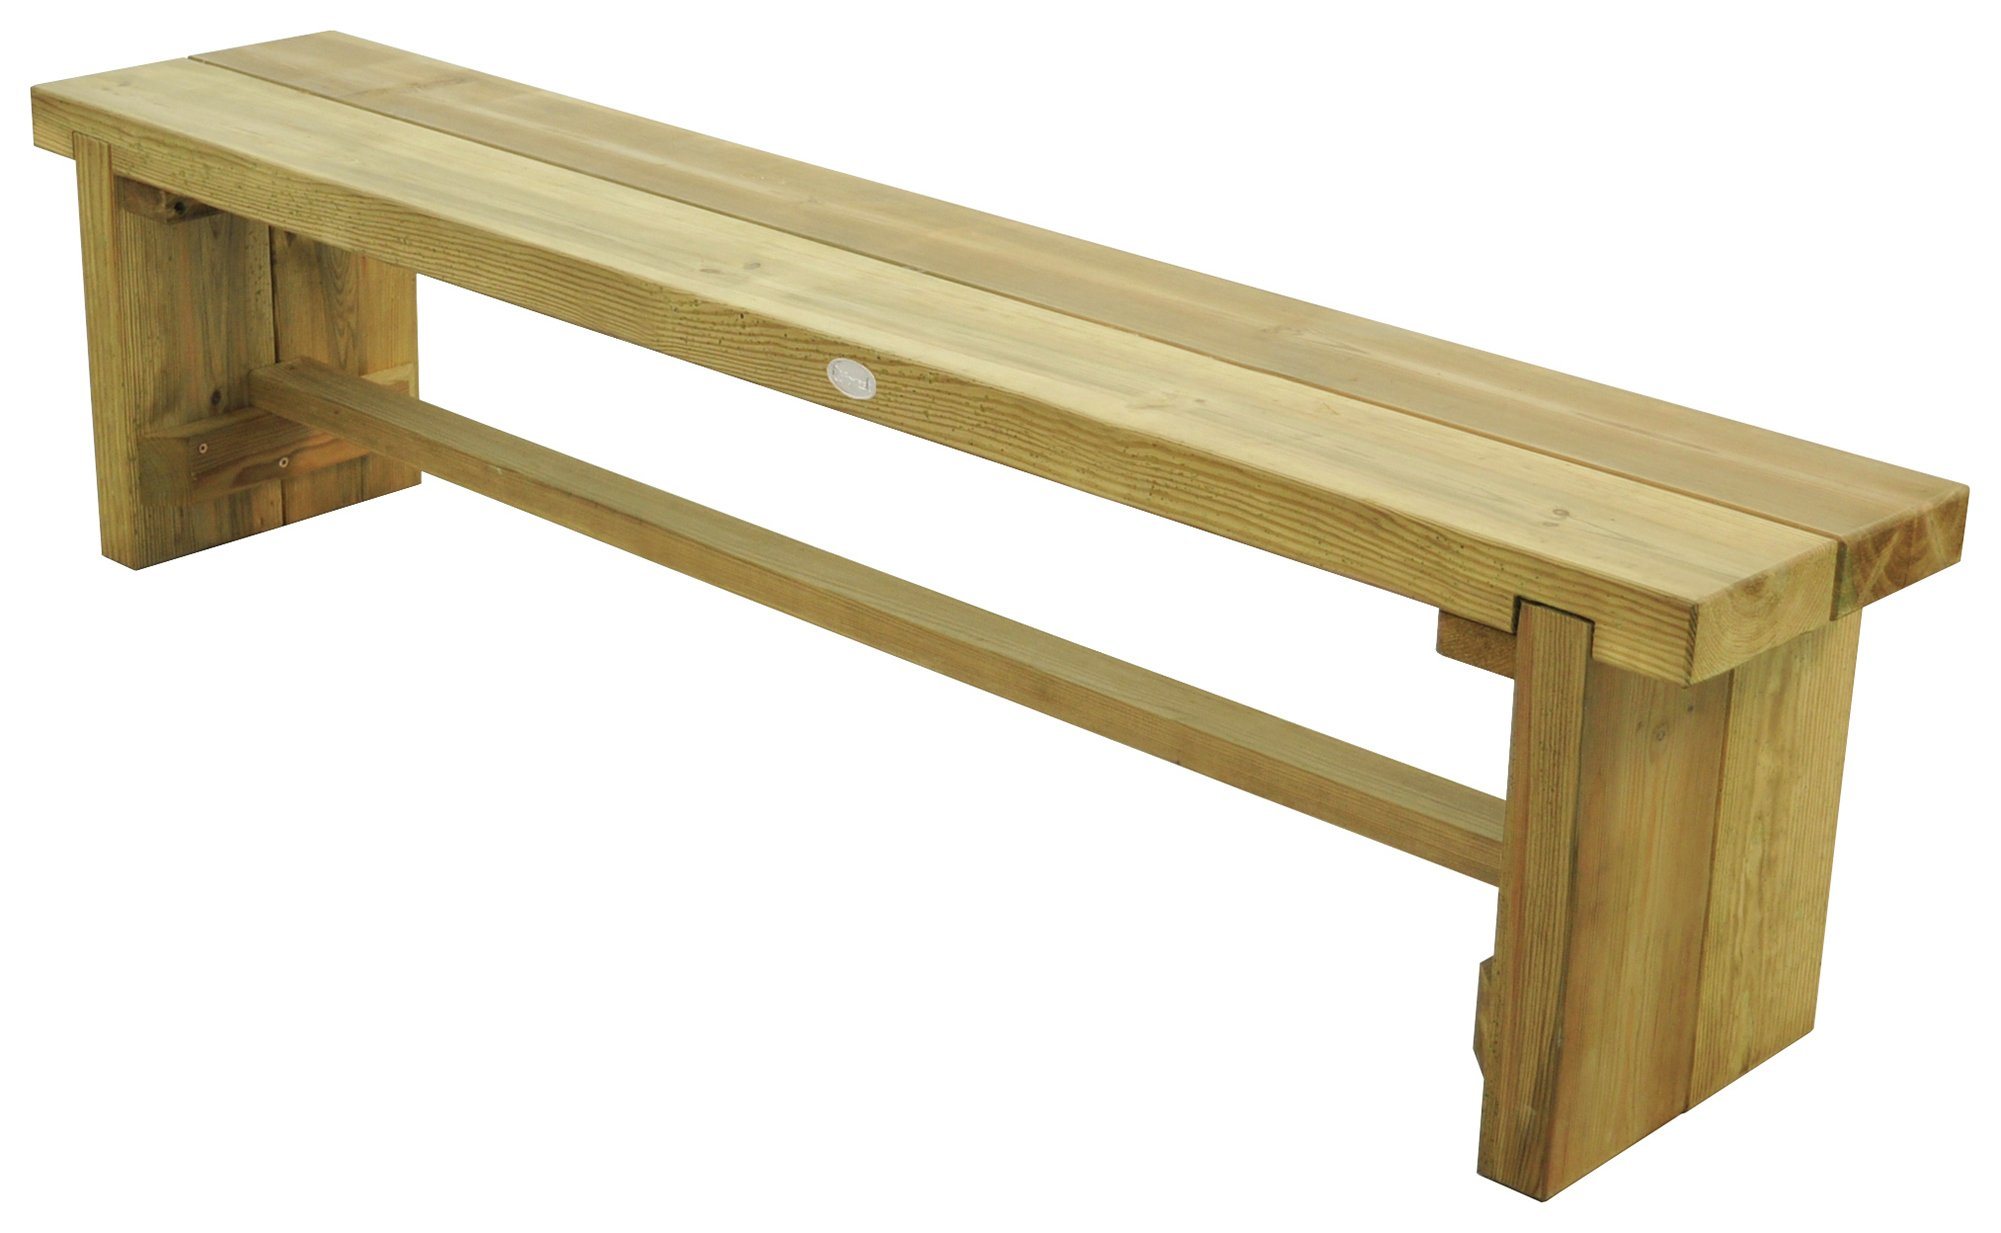 Image of Forest Double Sleeper Bench - 1.8m.